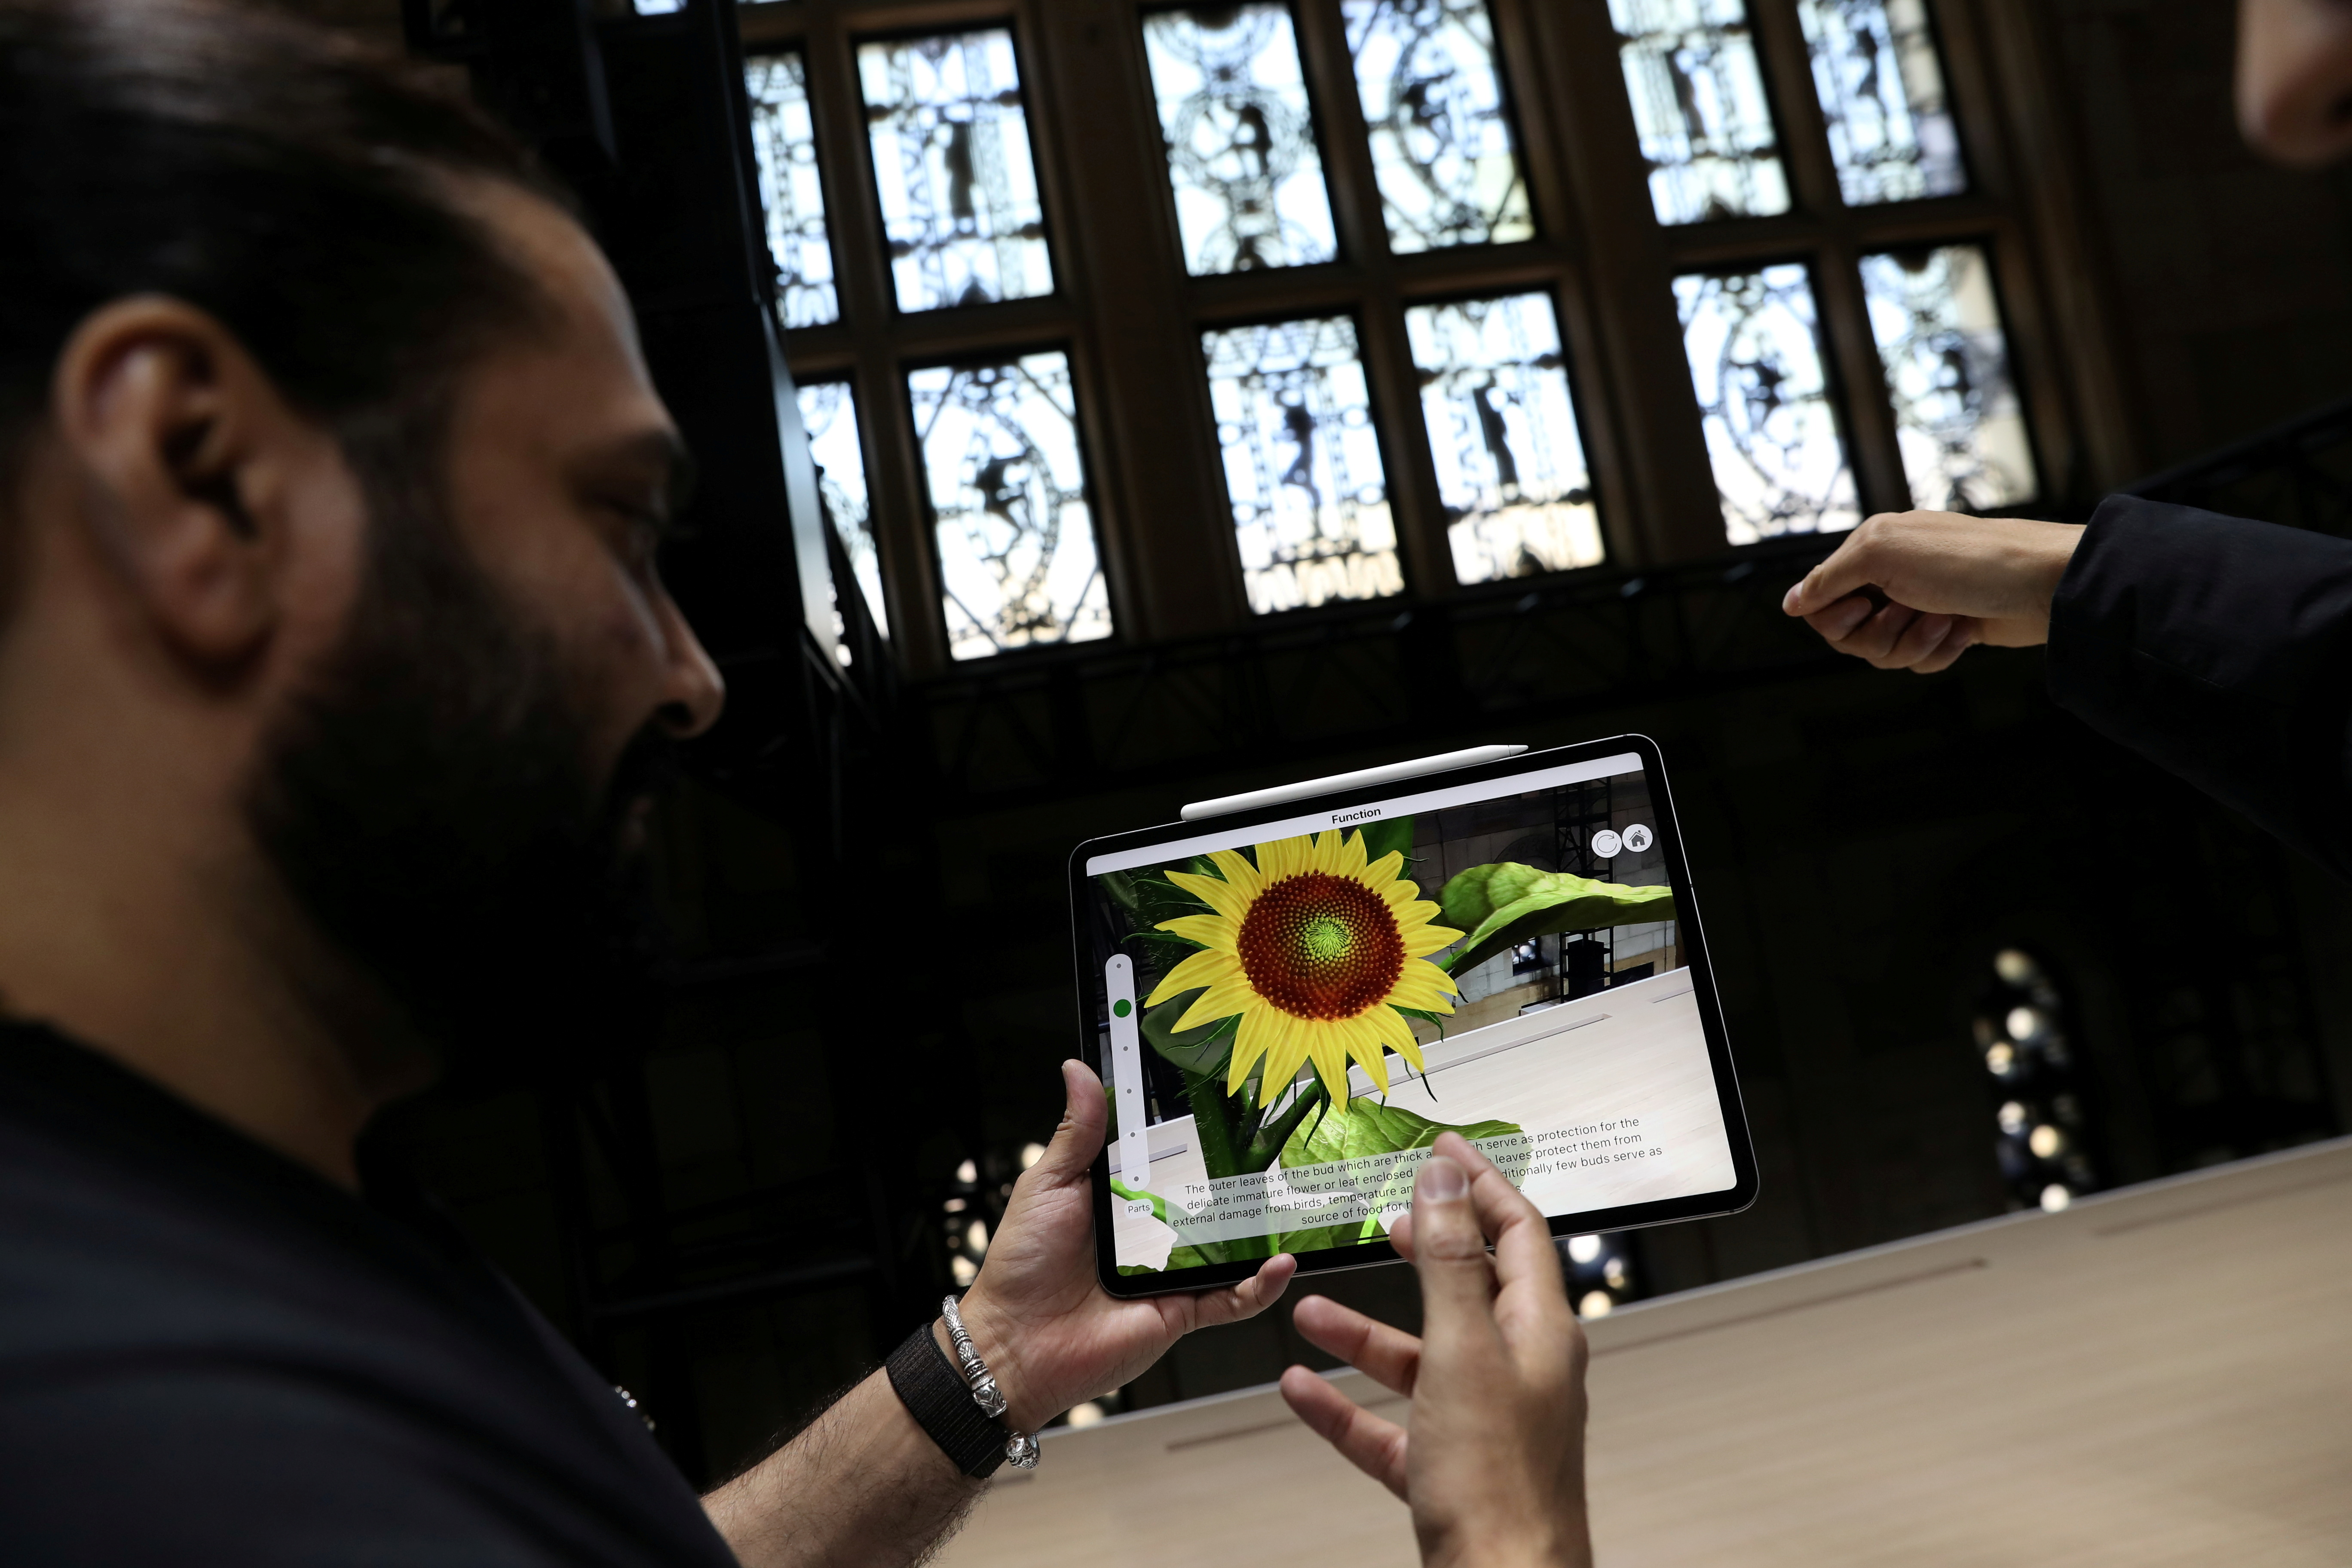 Attendees try out the new iPad Pro during an Apple launch event in the Brooklyn borough of New York, U.S., October 30, 2018. REUTERS/Shannon Stapleton/File Photo